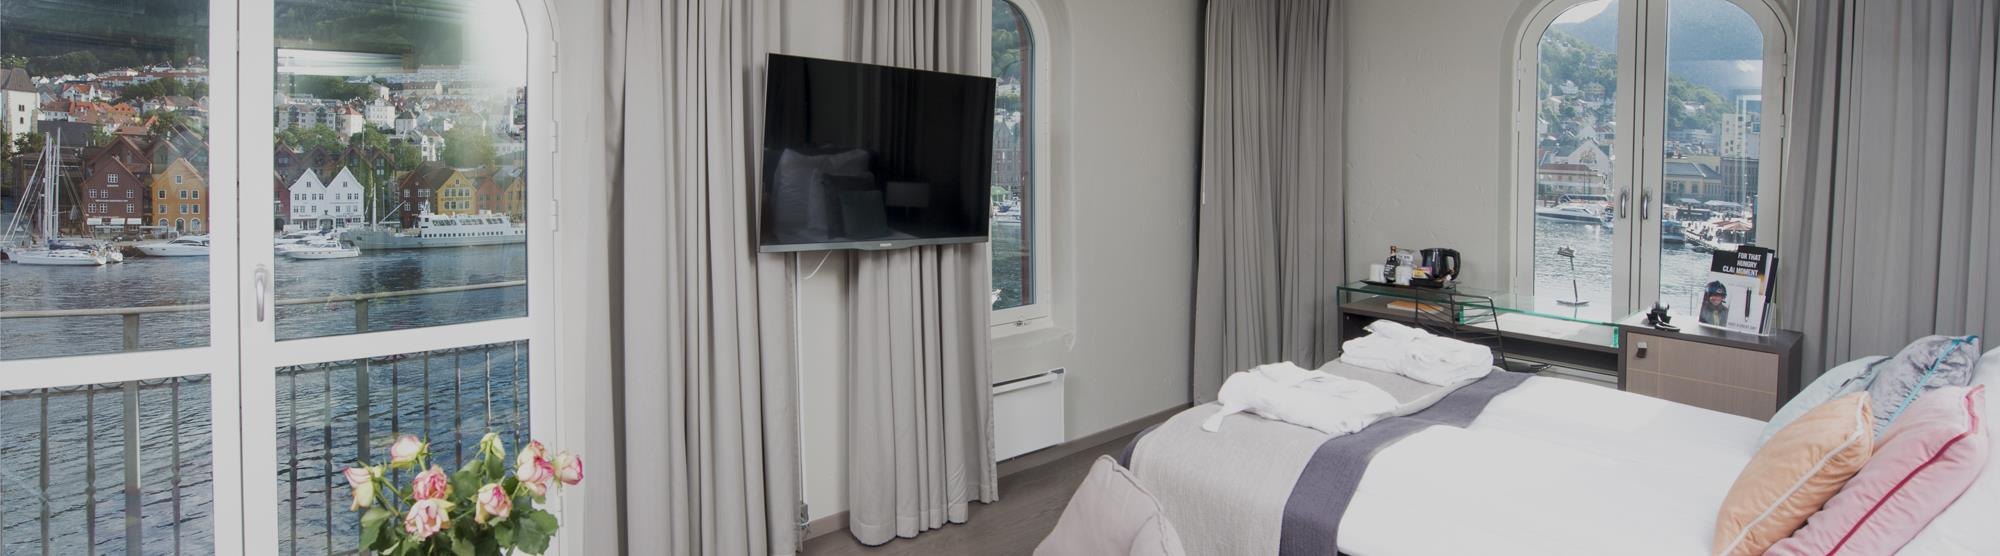 Several hotels offer rooms with panoramic views of Bergen.